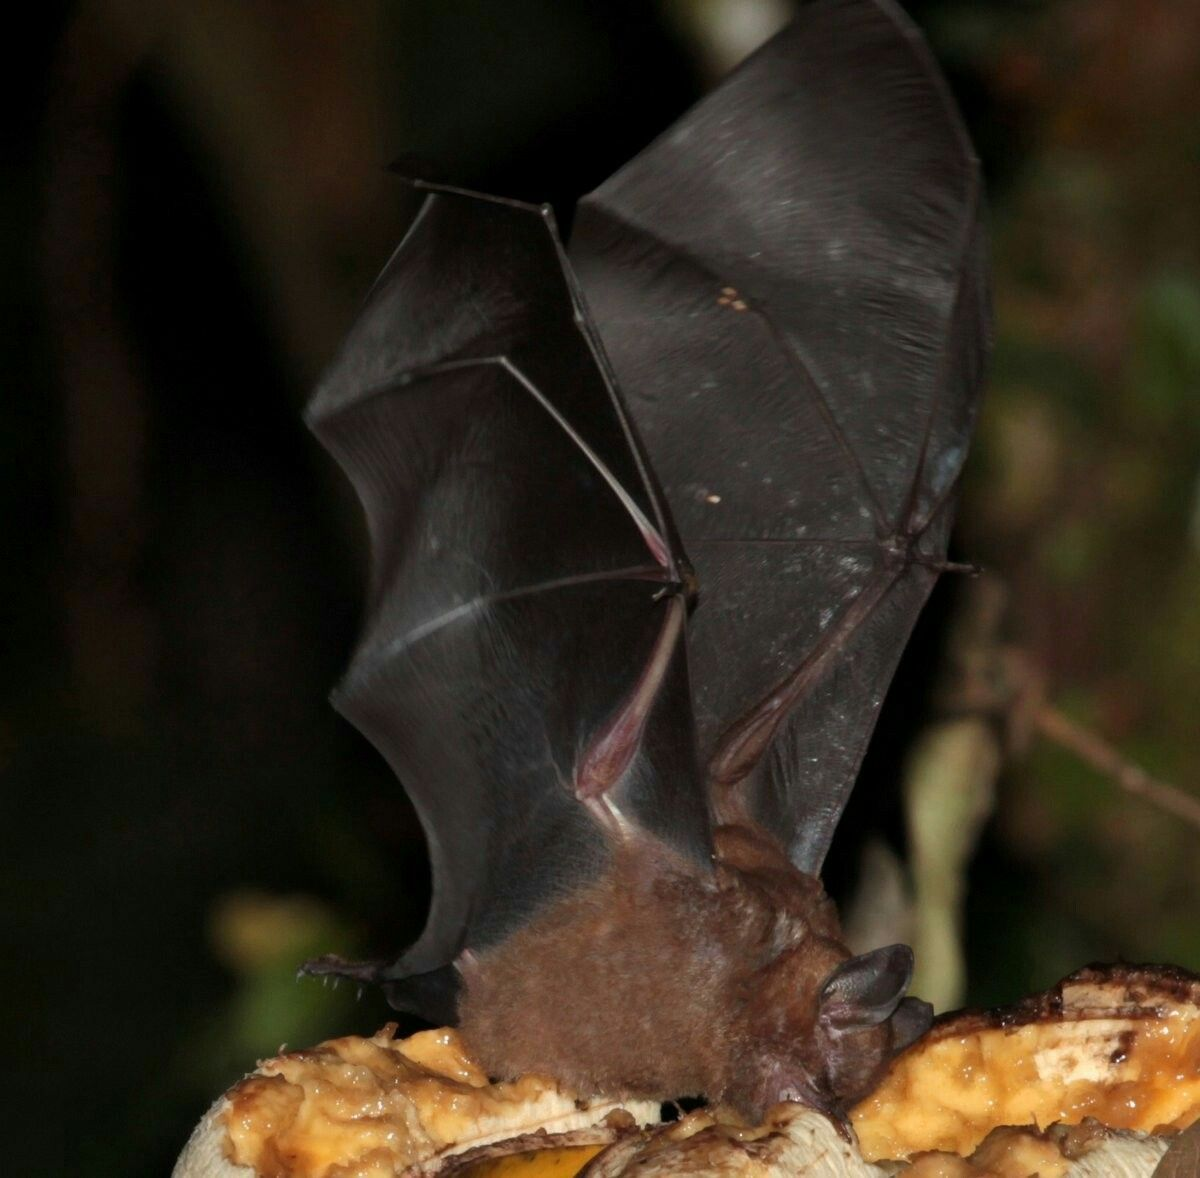 Tschudi's yellow-shouldered bat